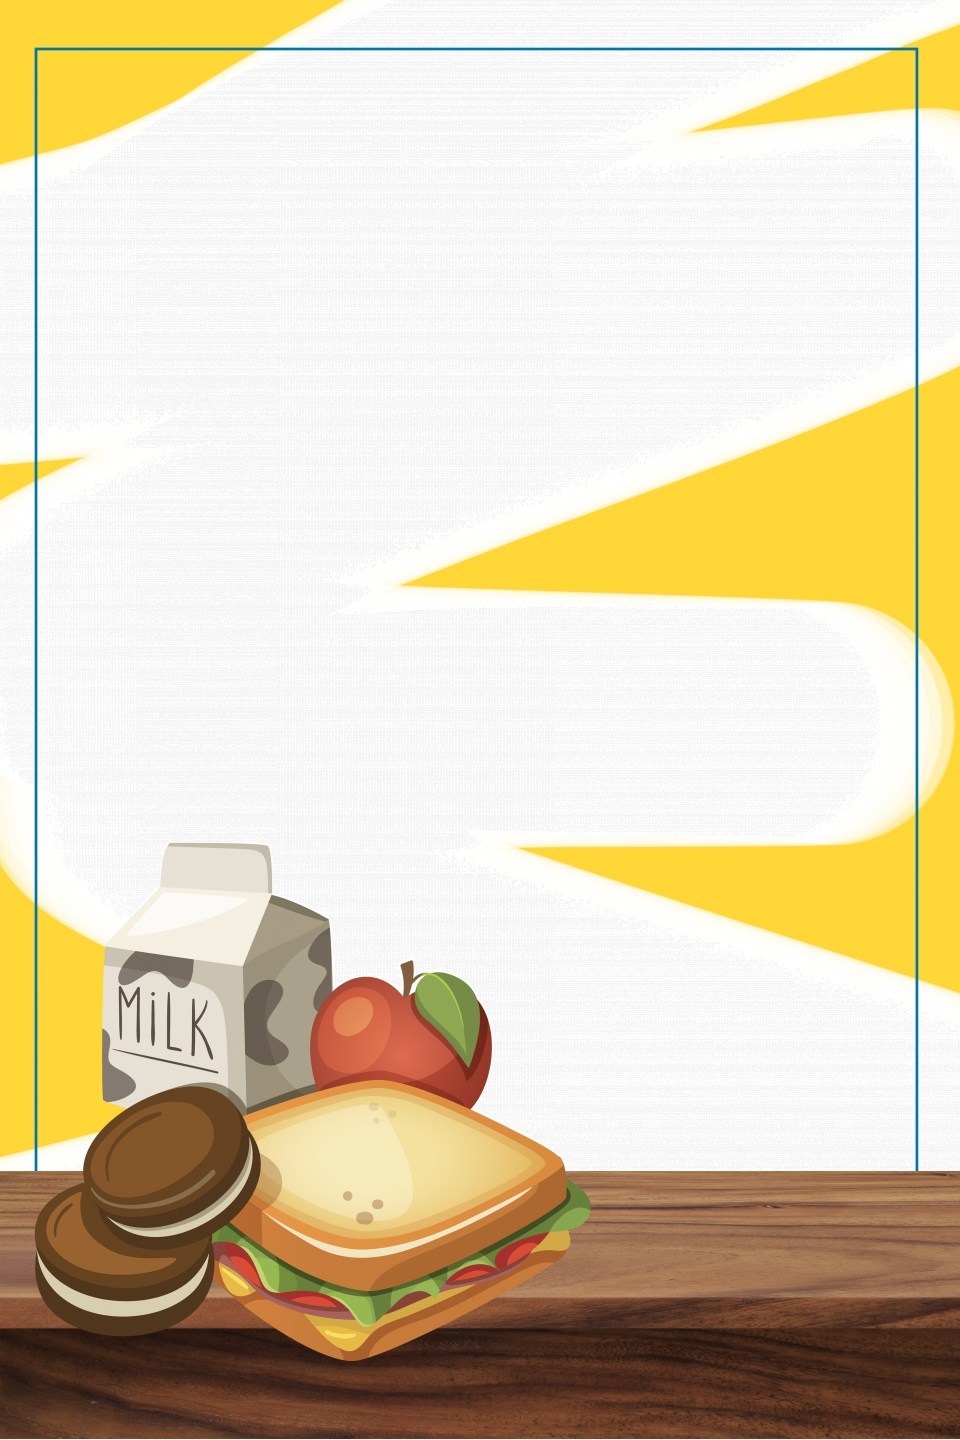 Nutritional Breakfast Healthy Food Promotion Poster, Nutritious